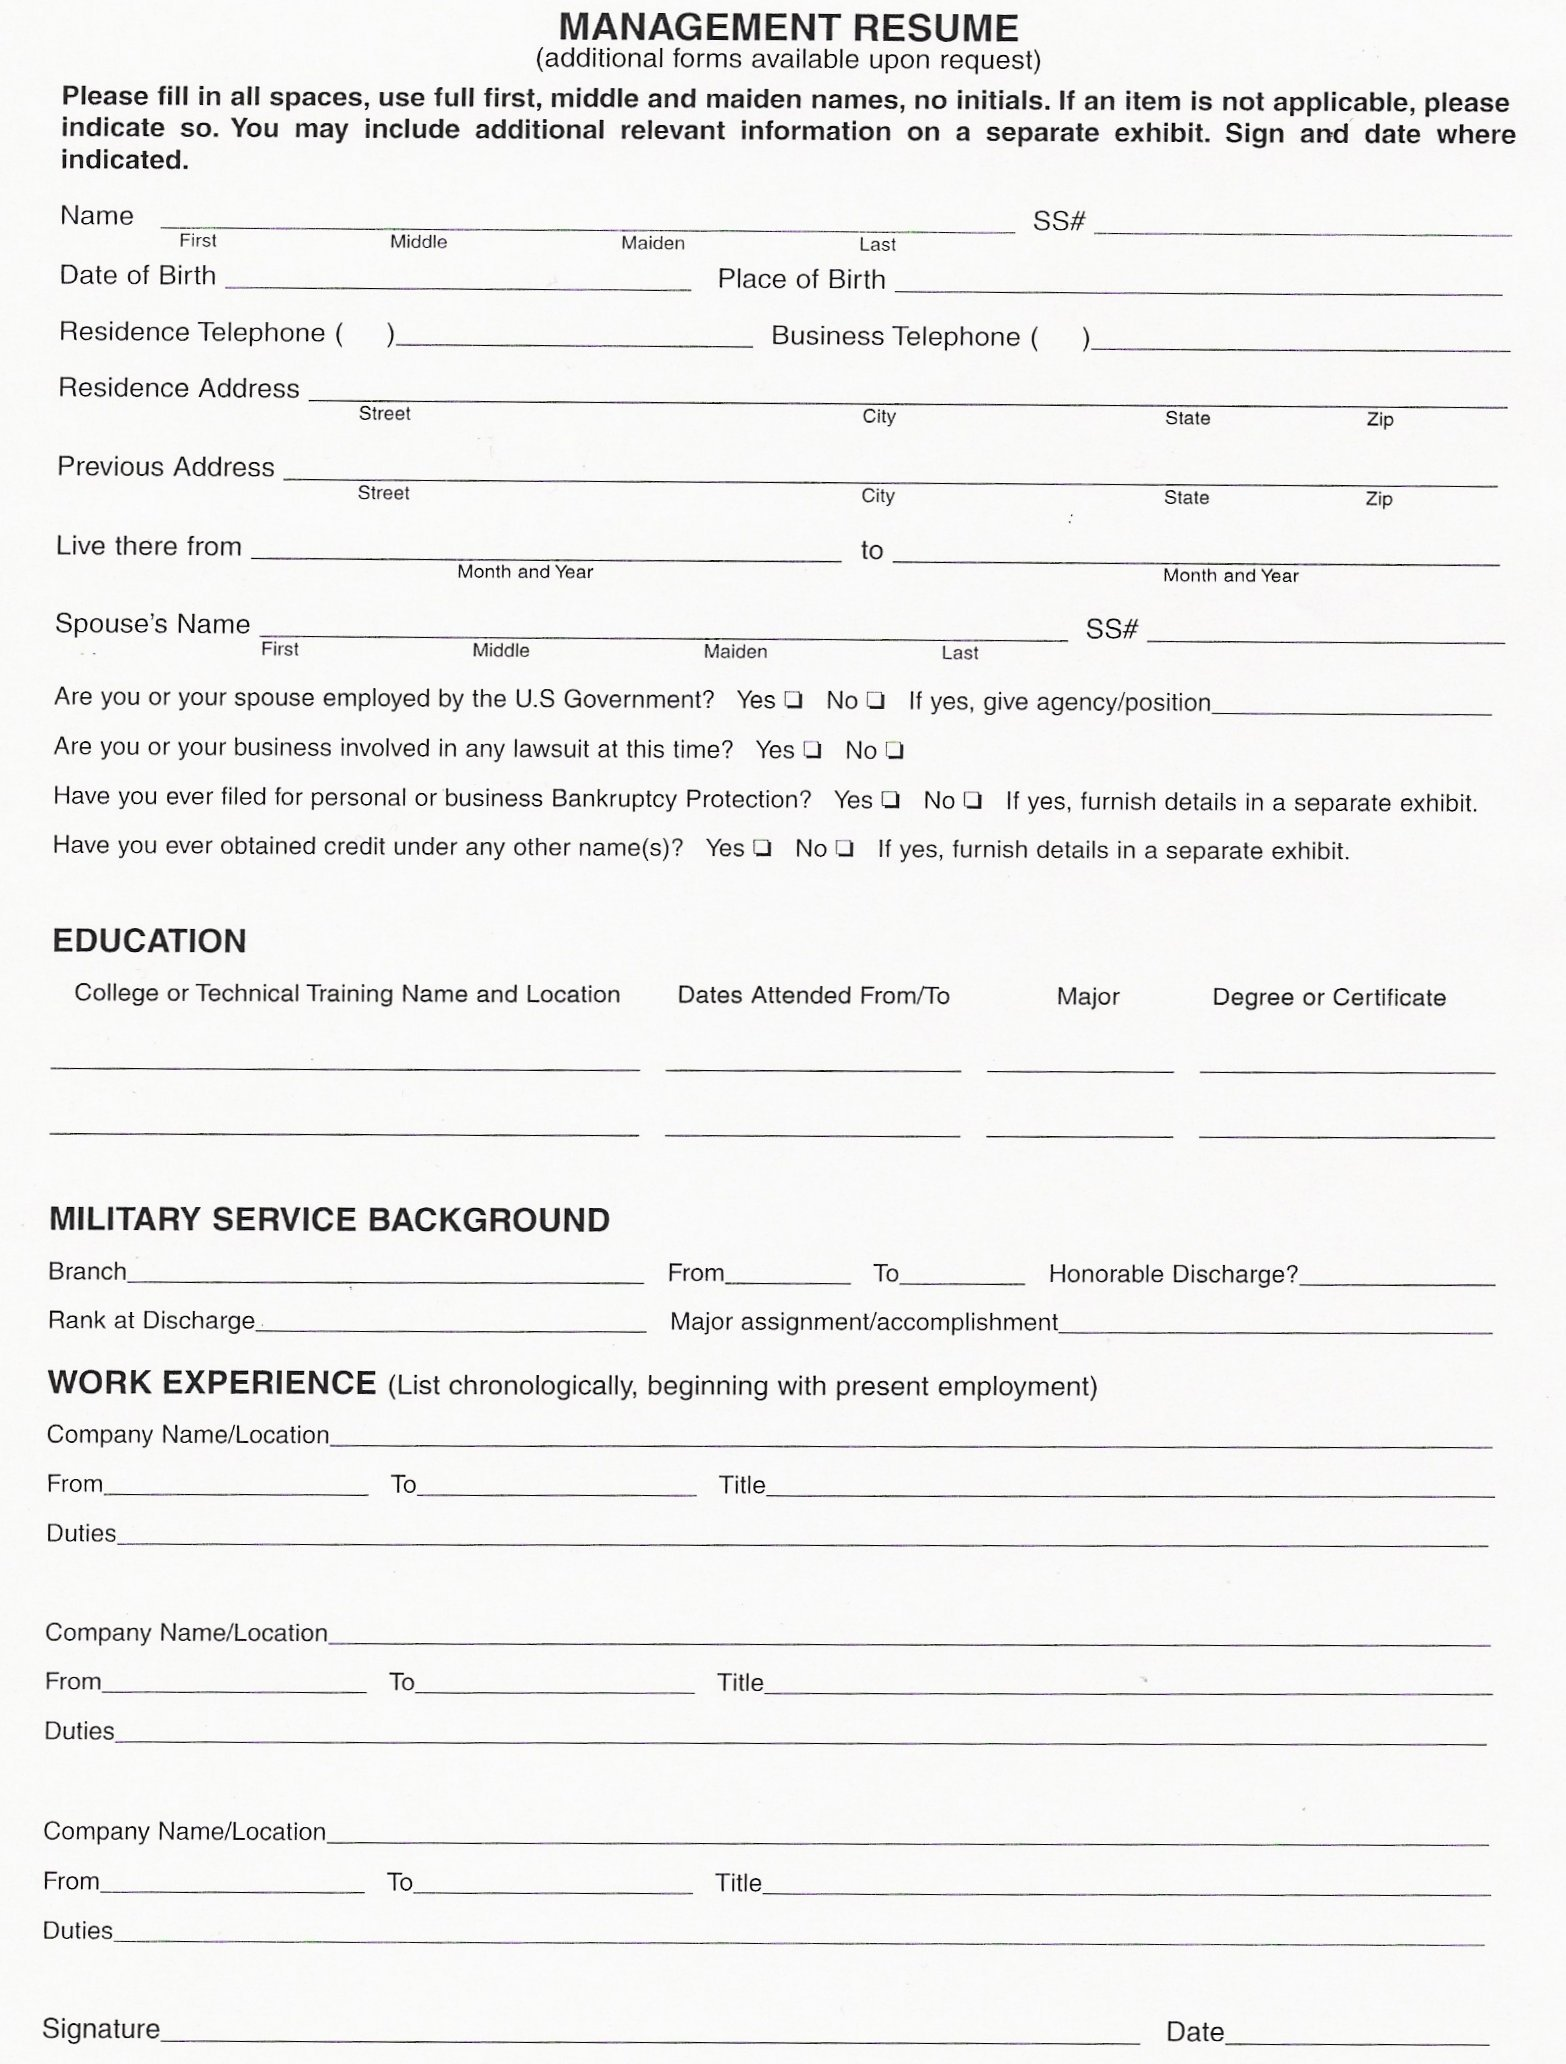 resume fill out form resume form resume and resume templates on